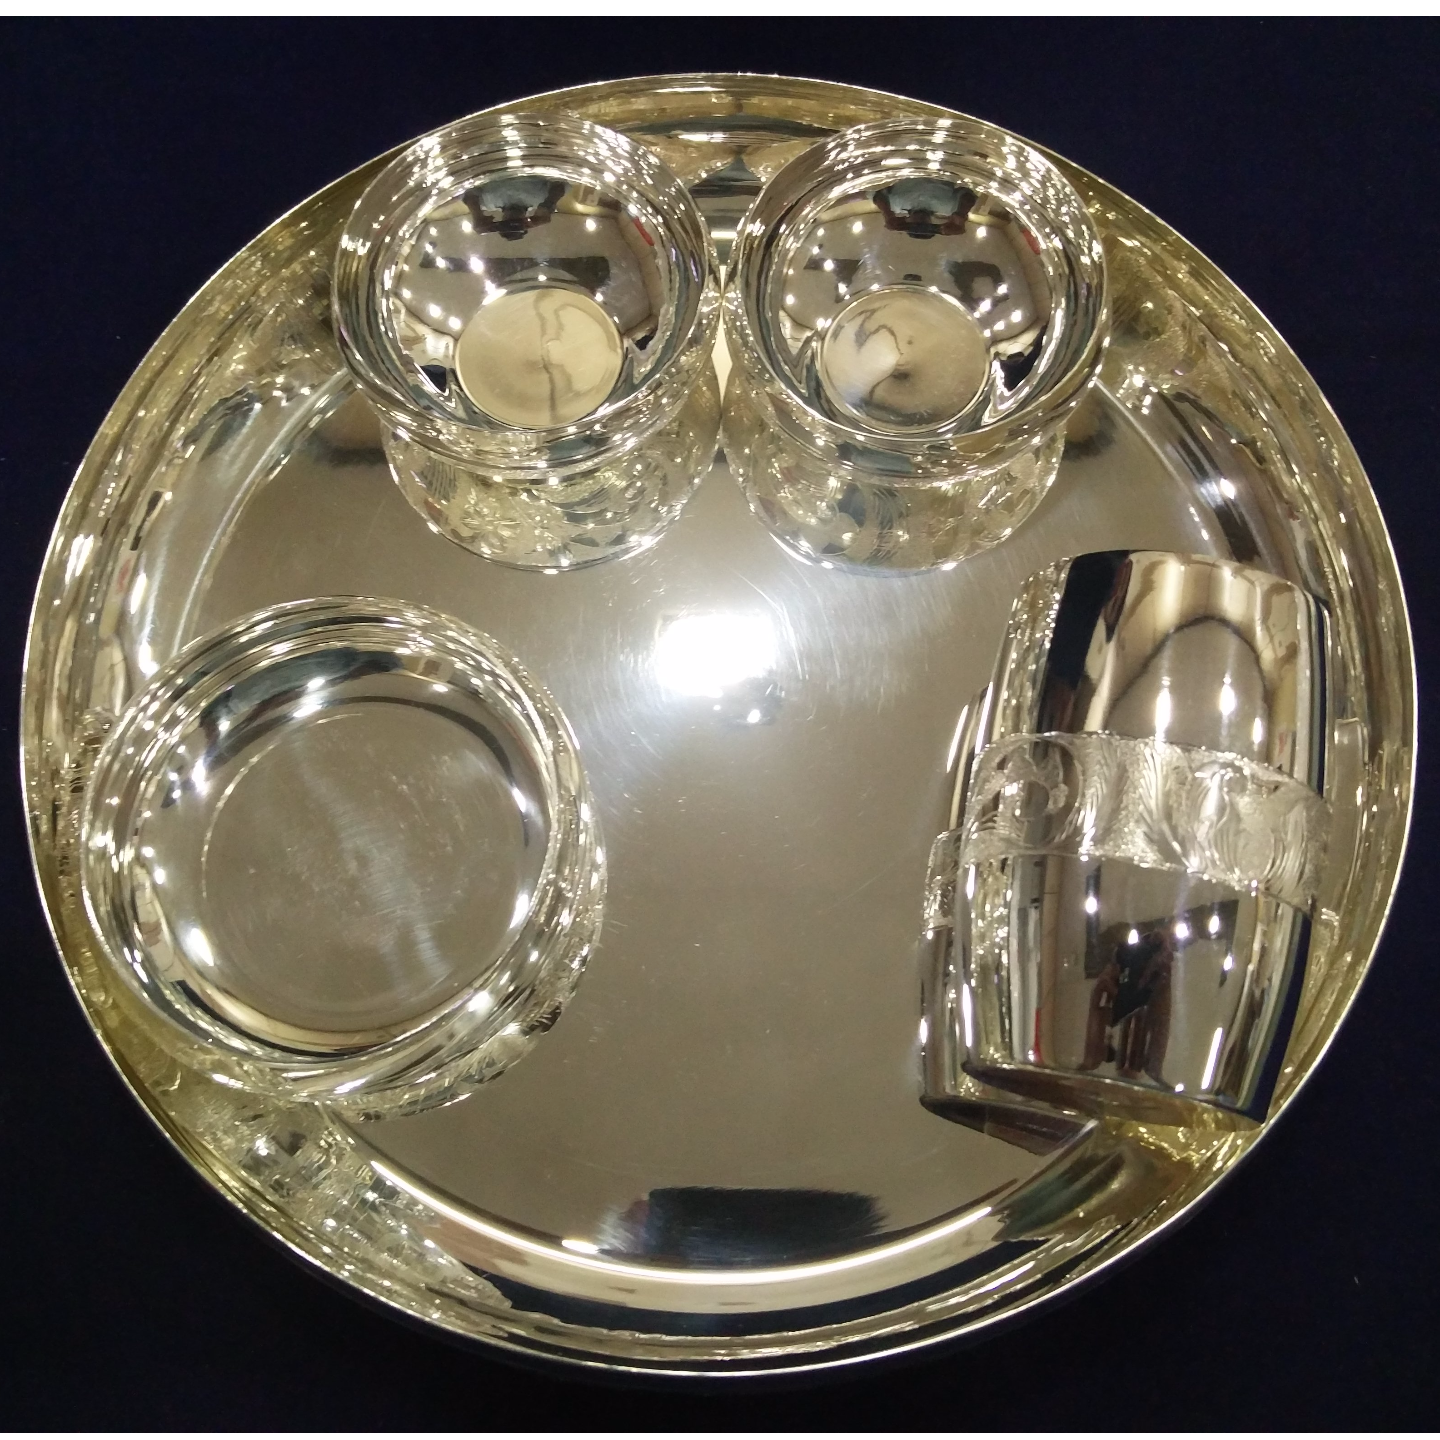 SILVER THALI SET WITH TUMBLER